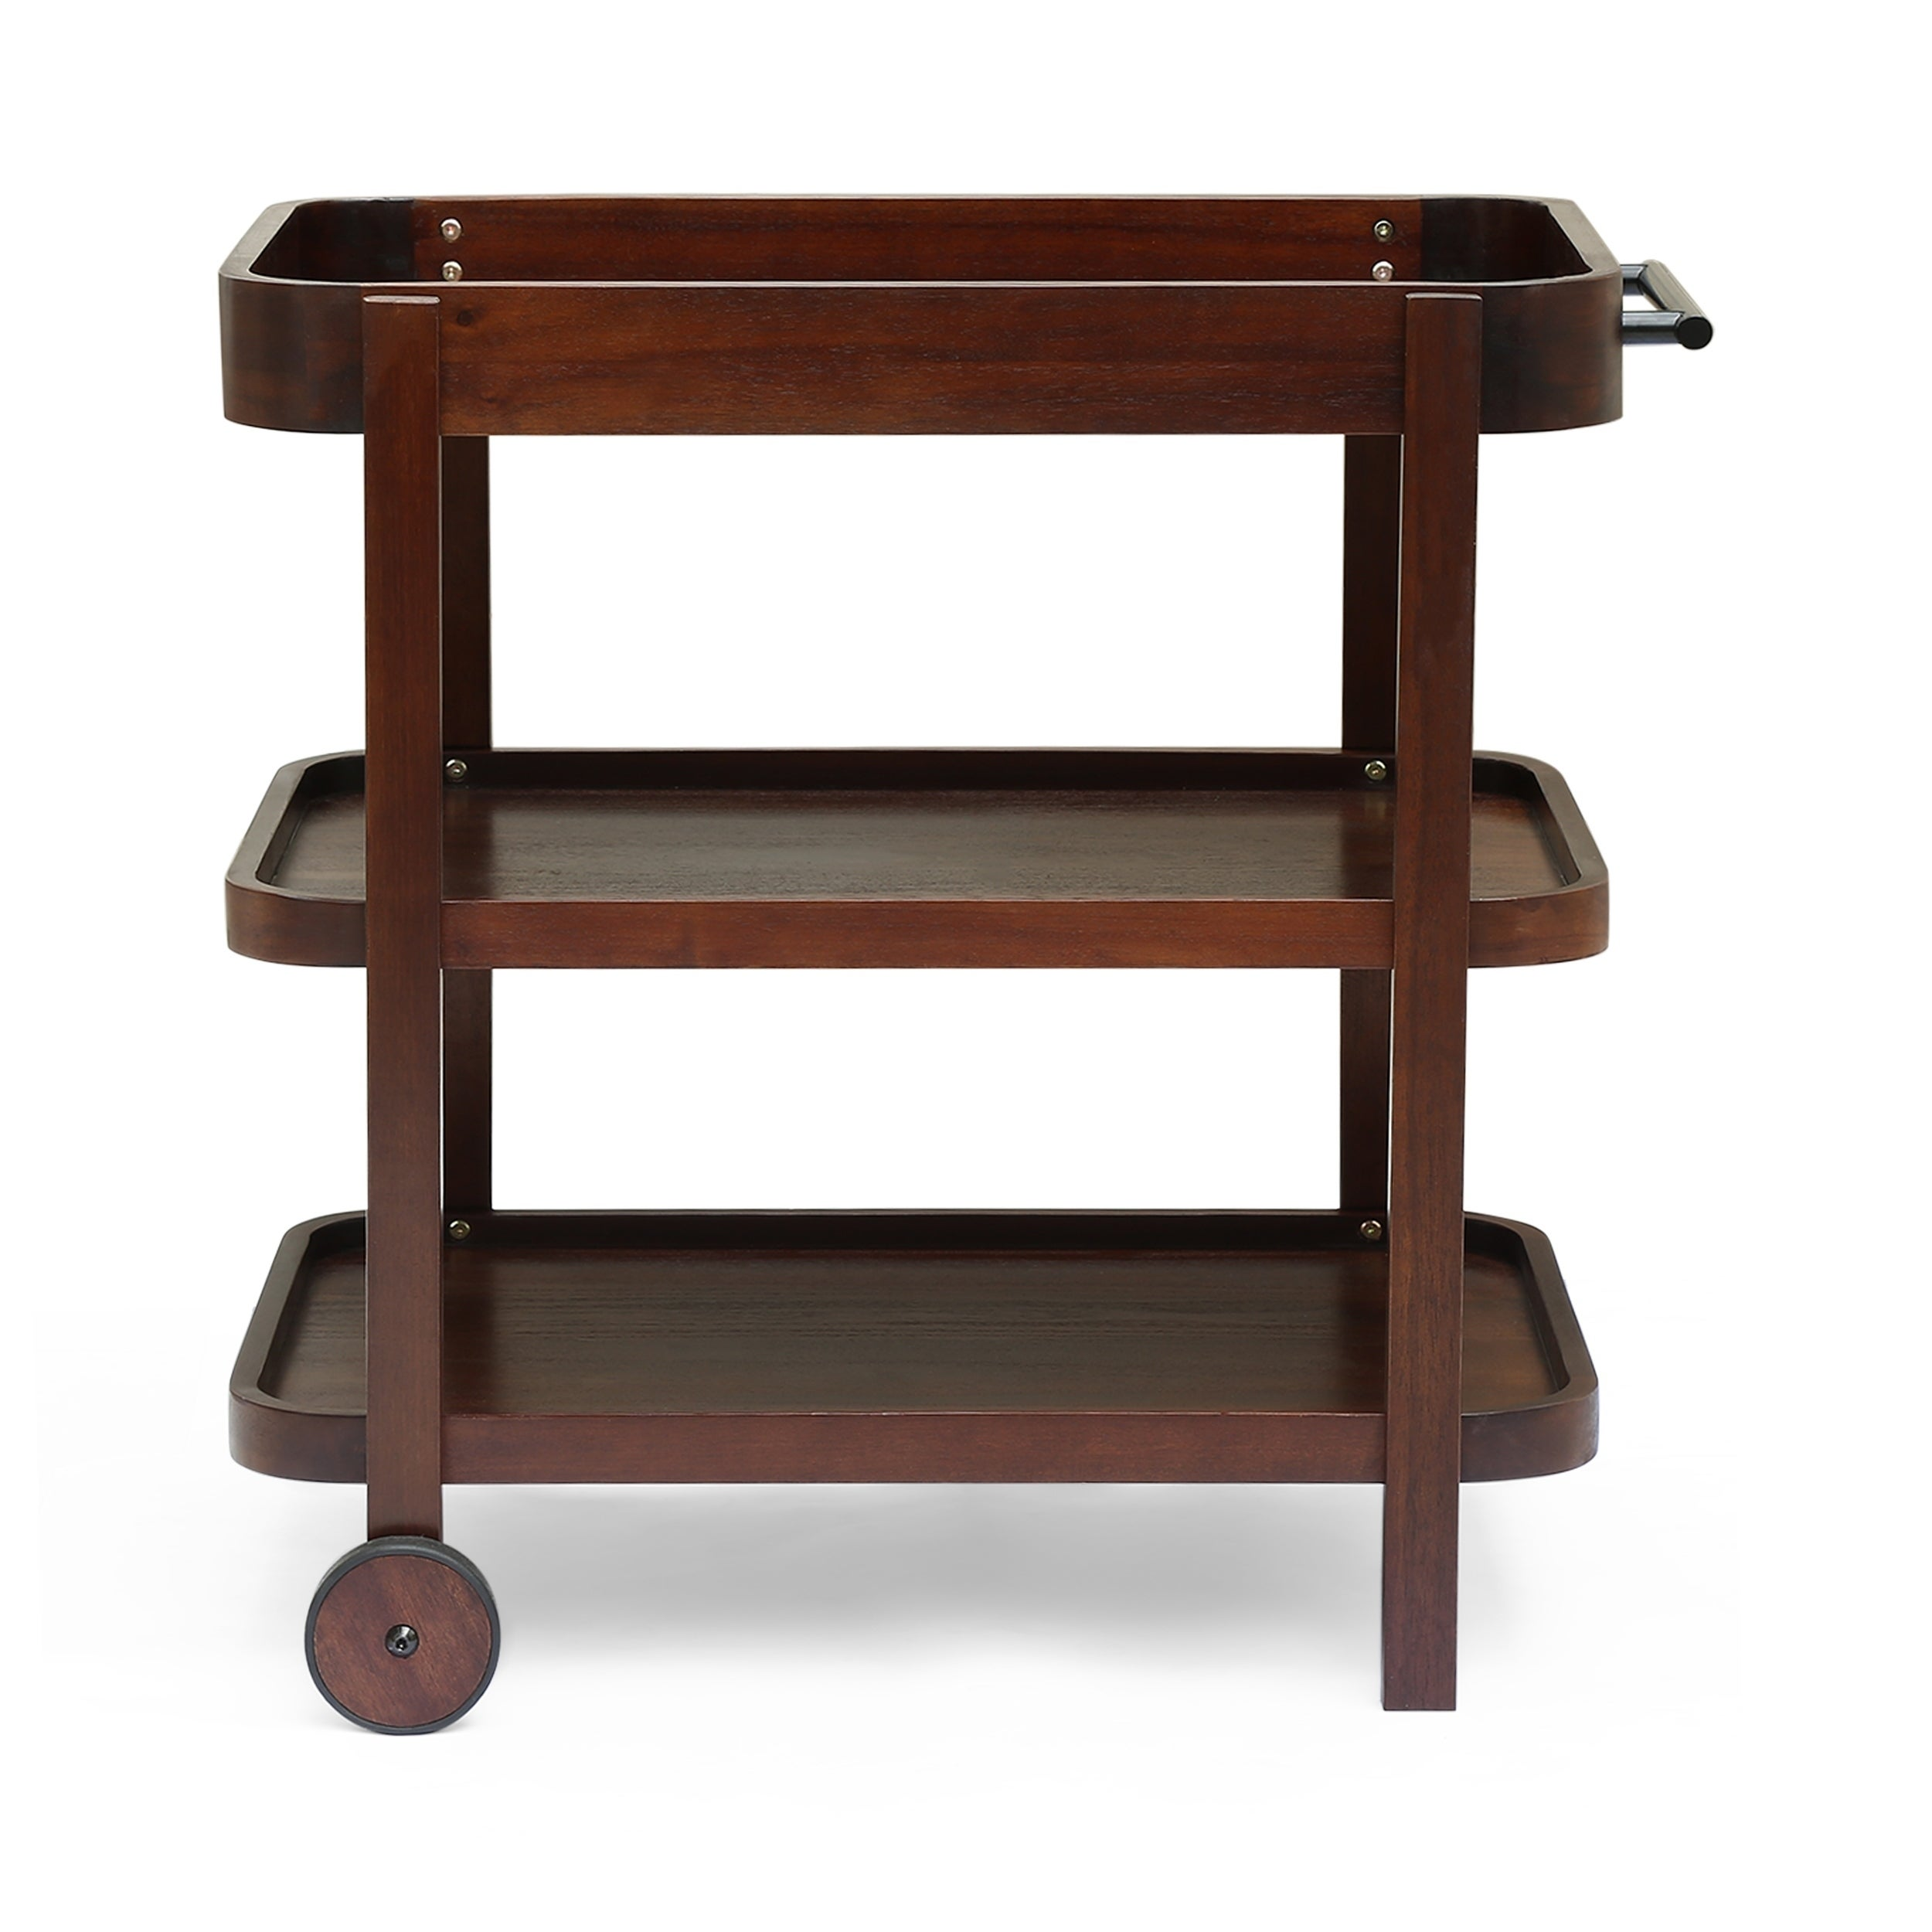 Bar Carts Serving Carts Home Garden Round 3 Tier Tea Bar Cart Serving Trolley With 4 Wheels Side Table Acacia Wood 360idcom Fr